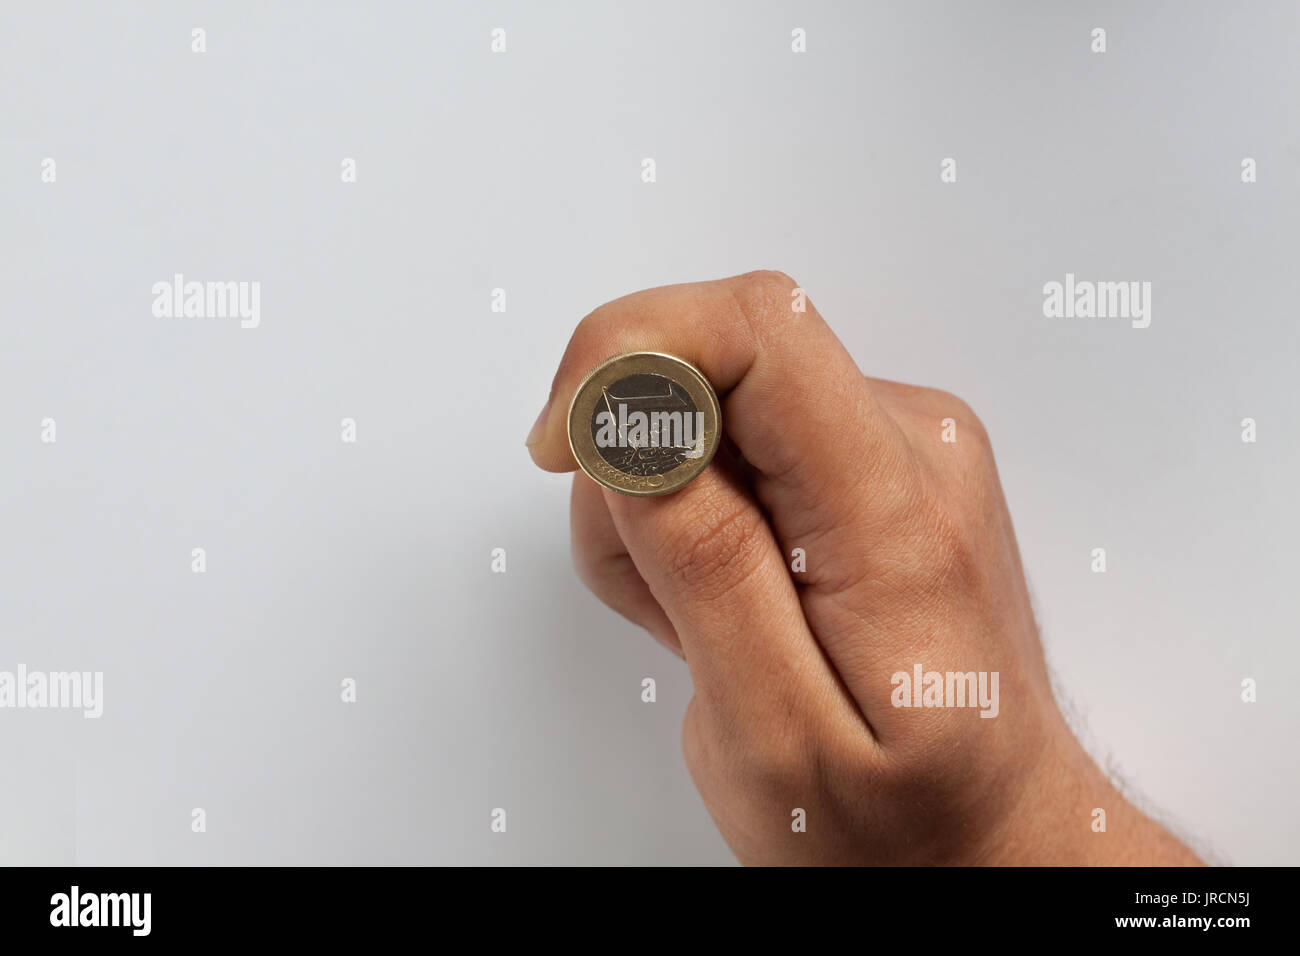 close-up of a hand throwing a euro coin - Stock Image